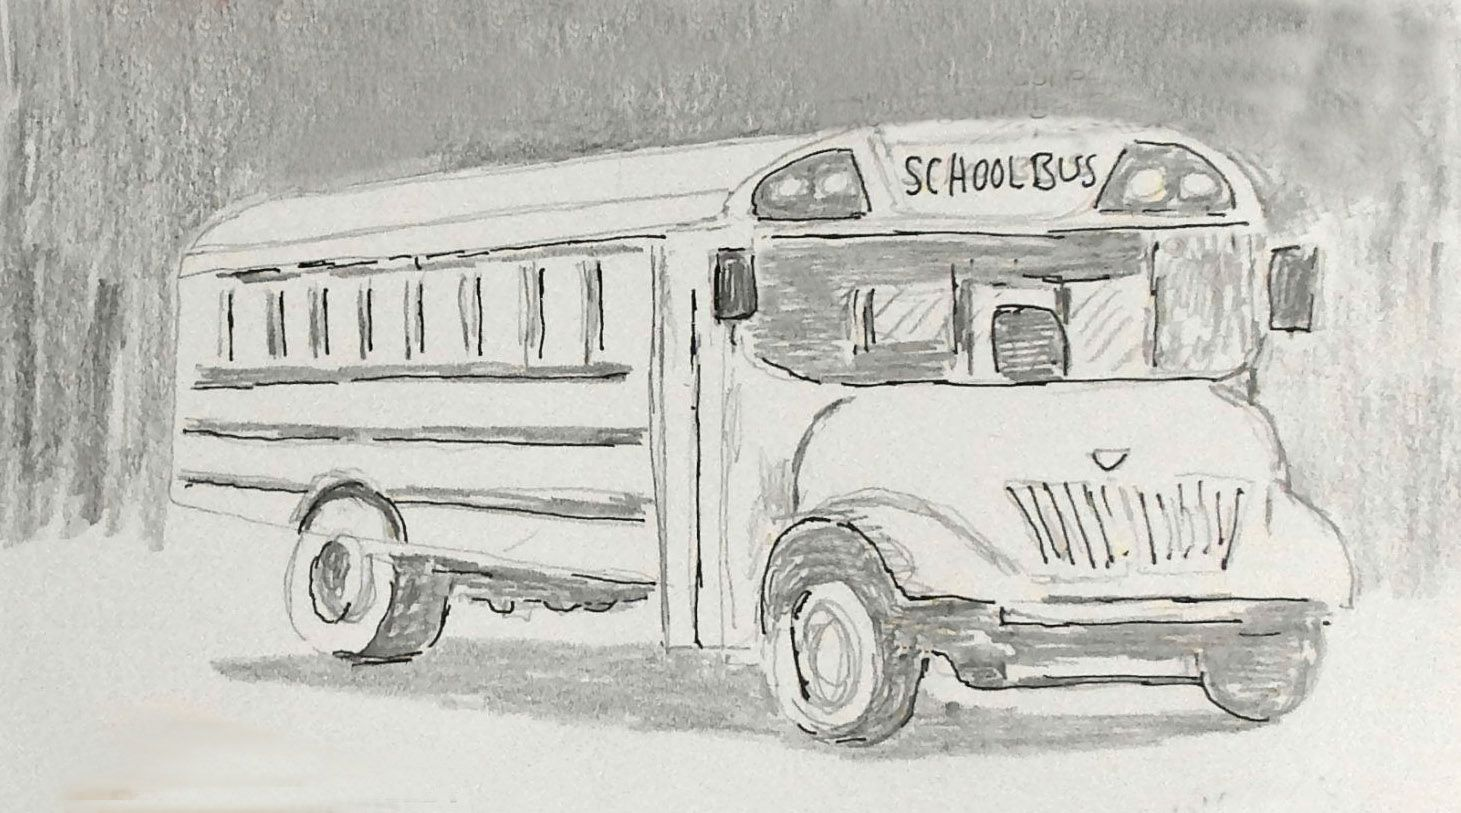 Daily Drawing No 159 School Bus Re Just Draw One Thing Today